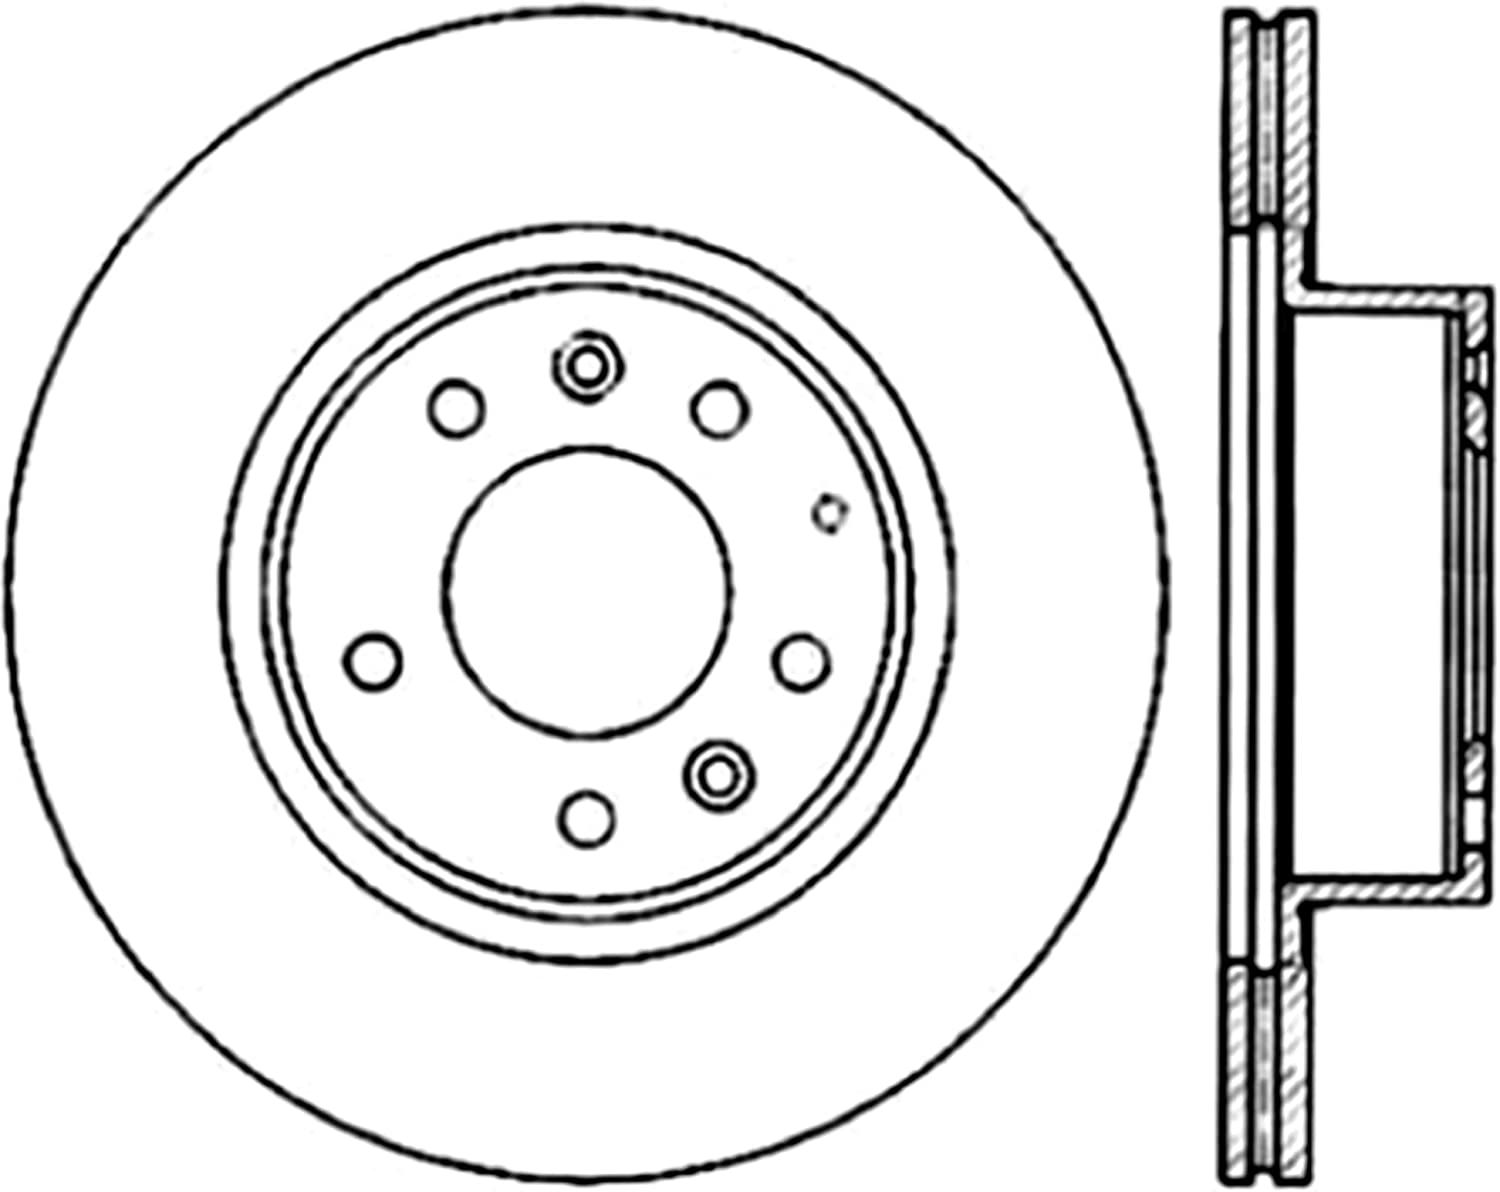 STOPTECH SPORTSTOP SLOTTED REAR BRAKE DISC ROTOR SET FOR 93-95 MAZDA RX-7 FD